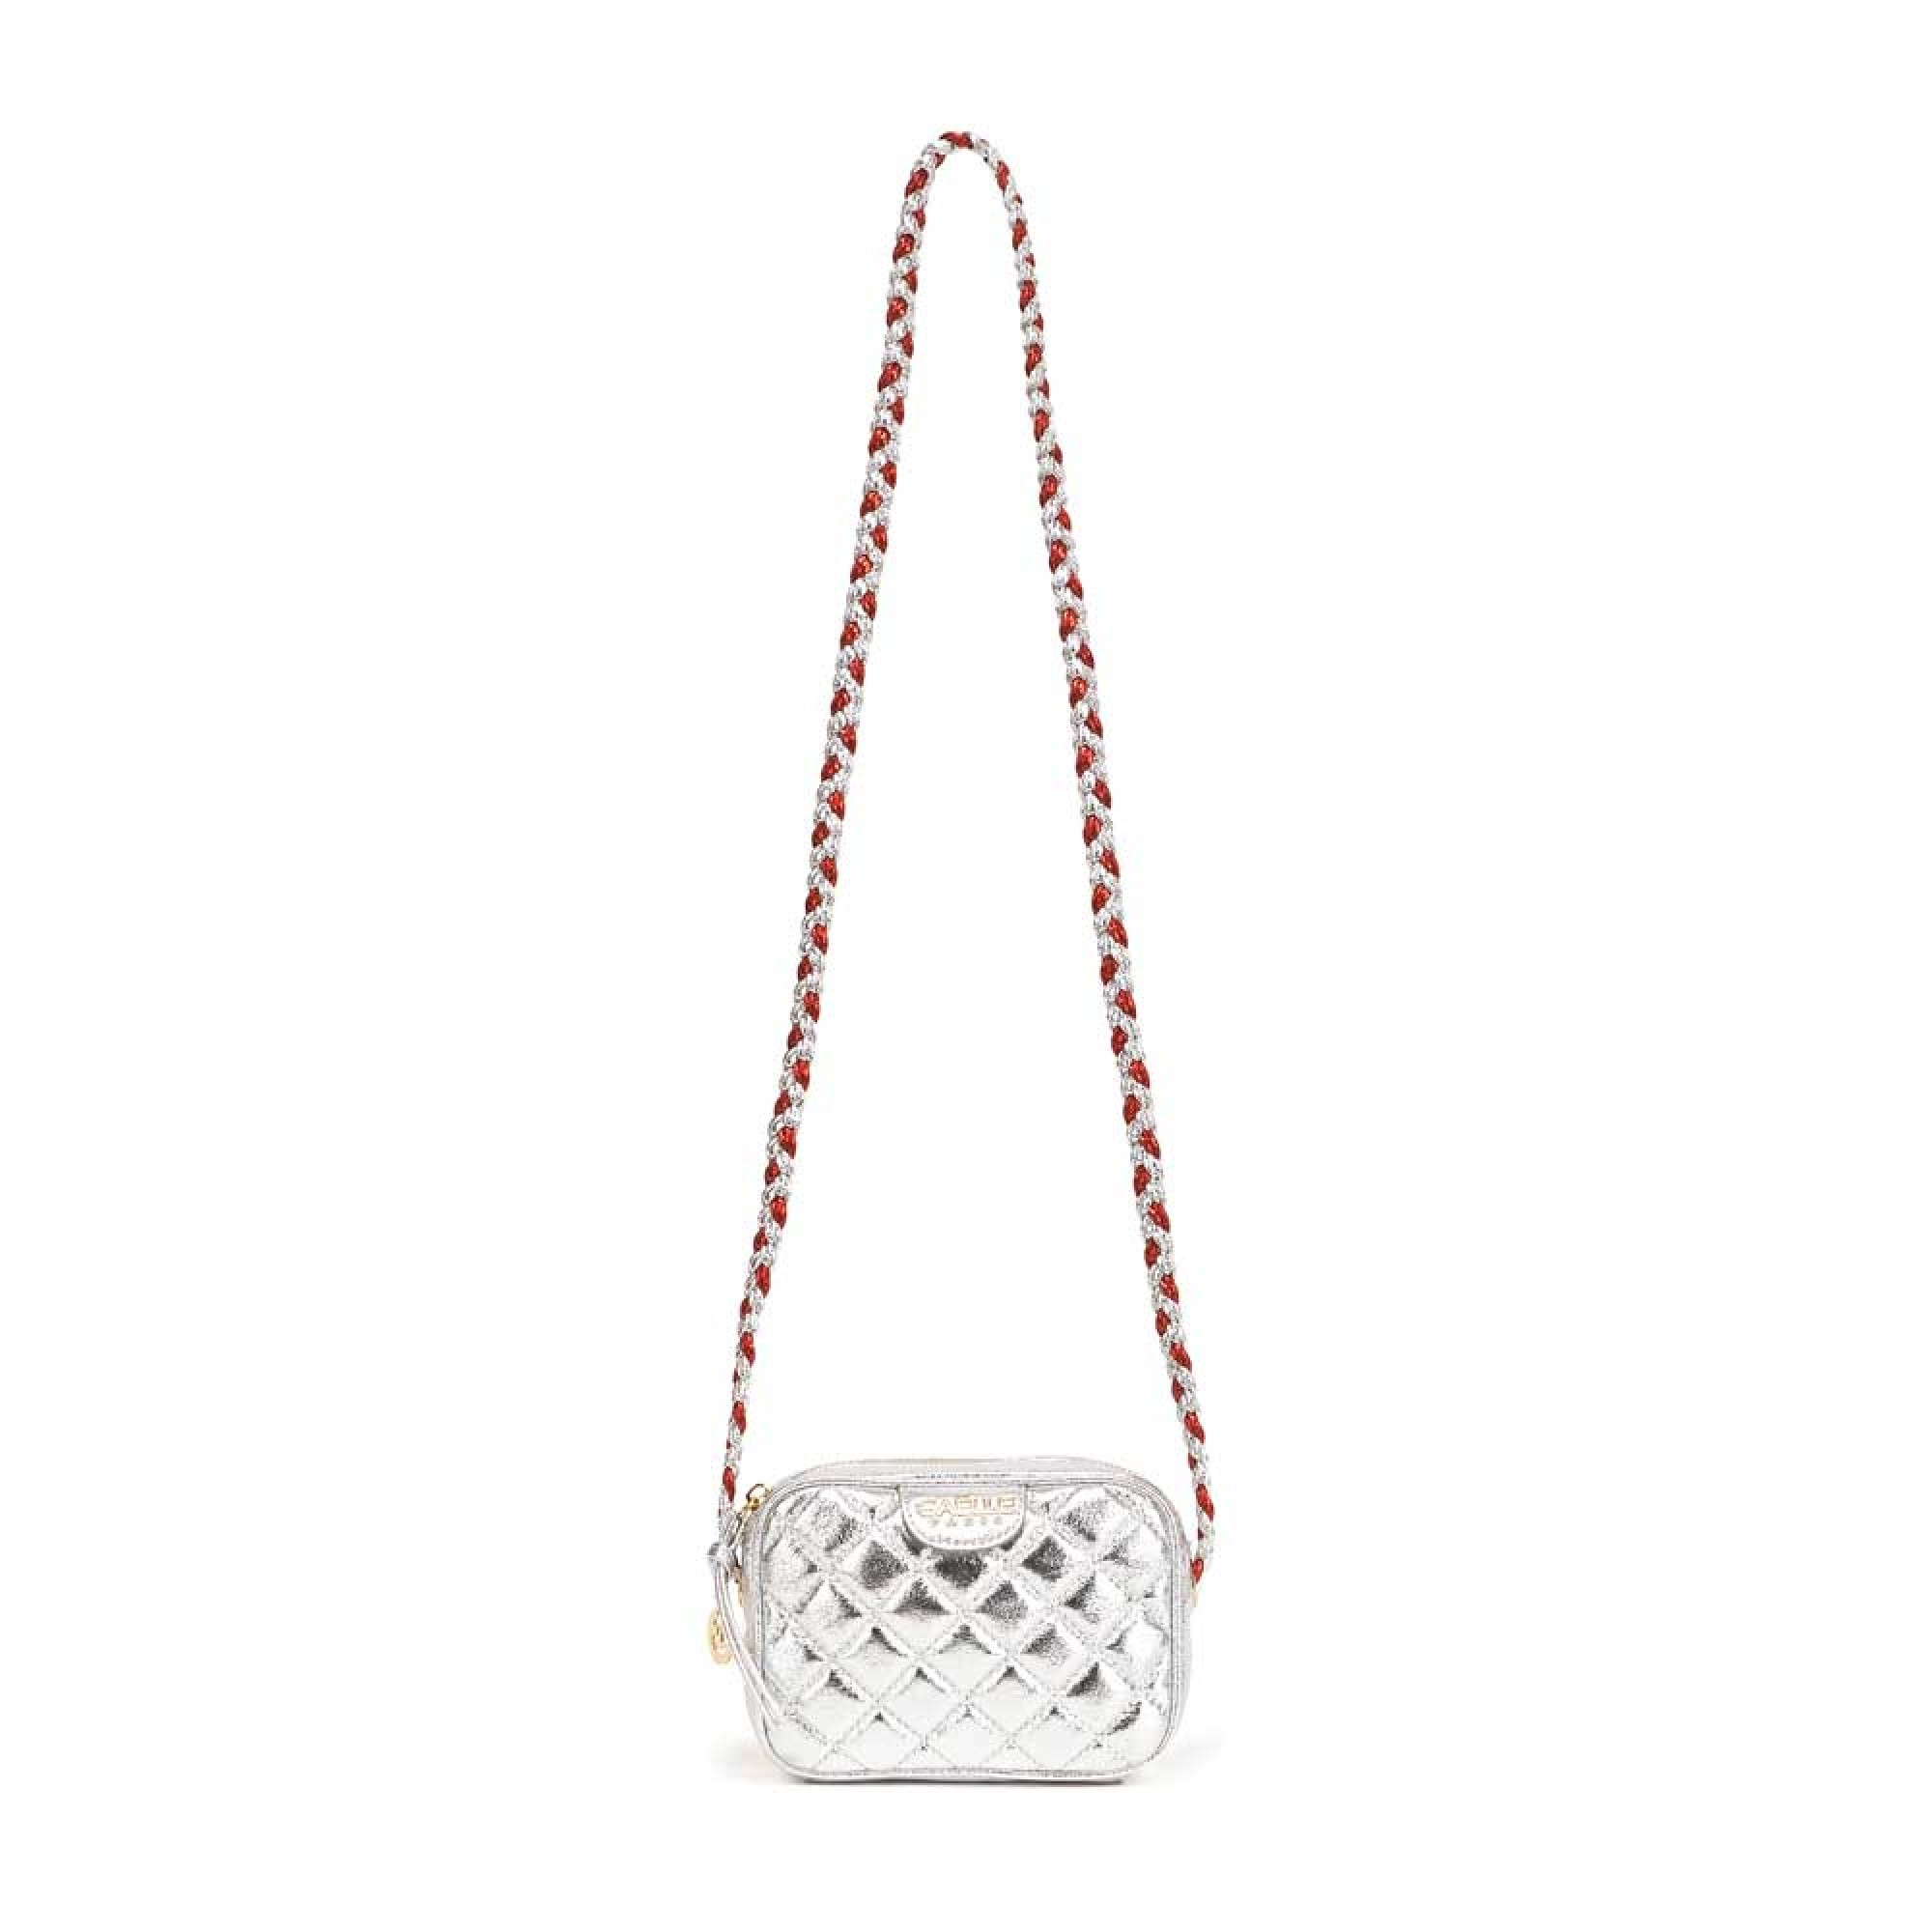 SHOULDER BAG - GBDA1480 - GAELLE PARIS